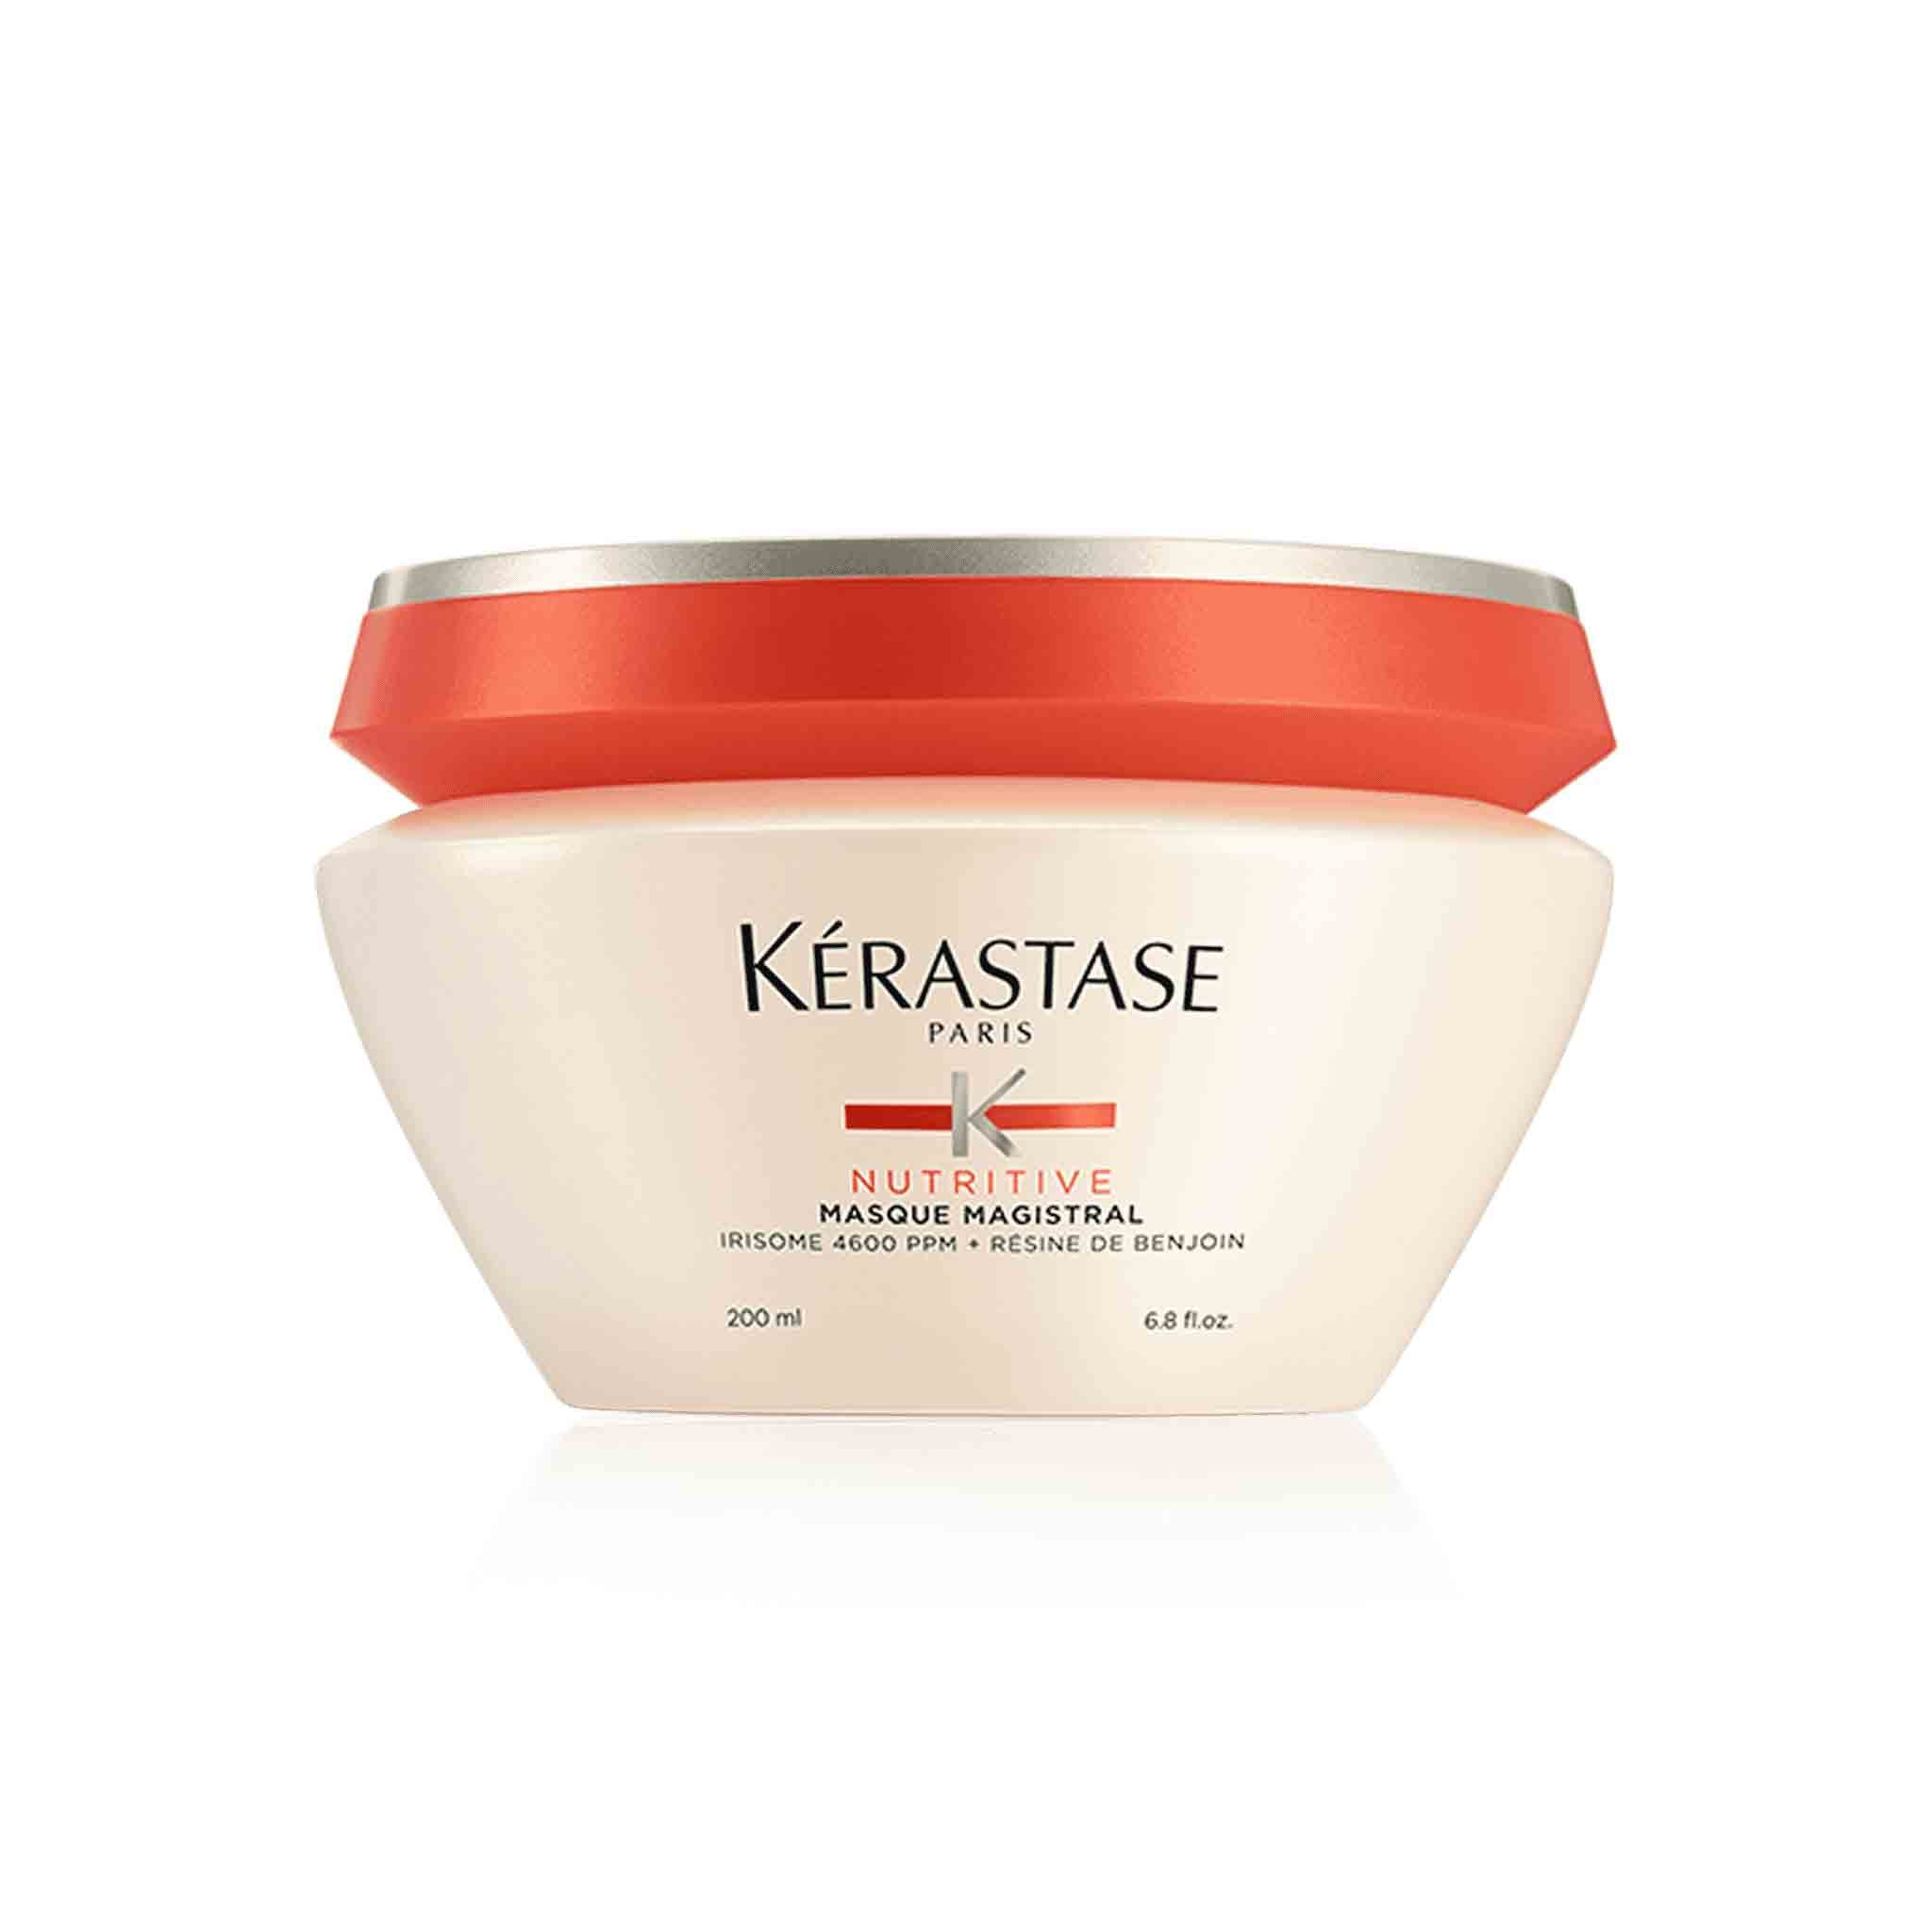 Masque Magistral For Severely Dry Hair